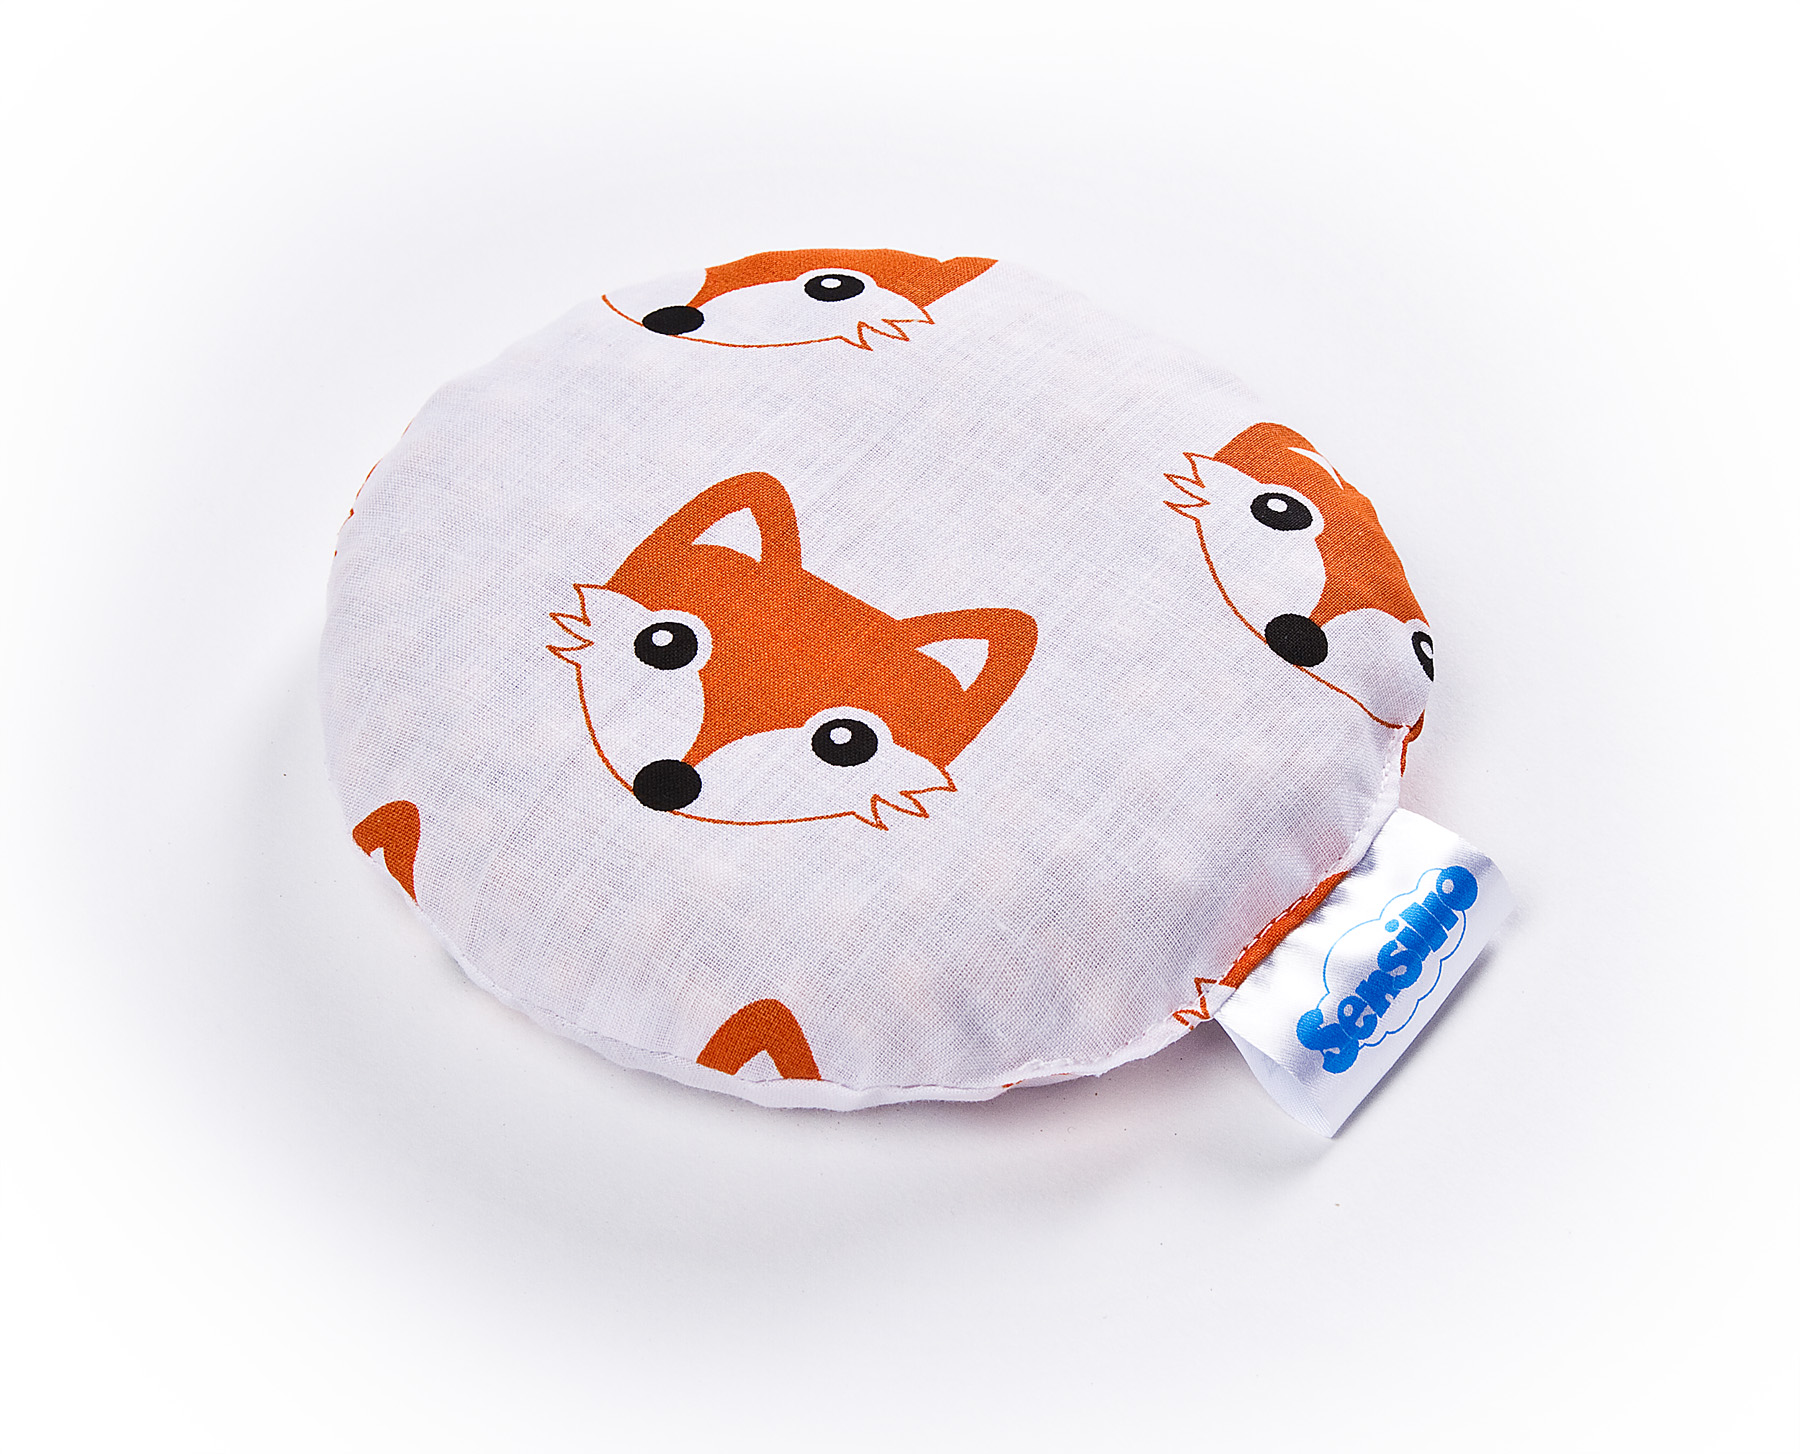 Hot-water Bottle With Cherry Stones – foxes